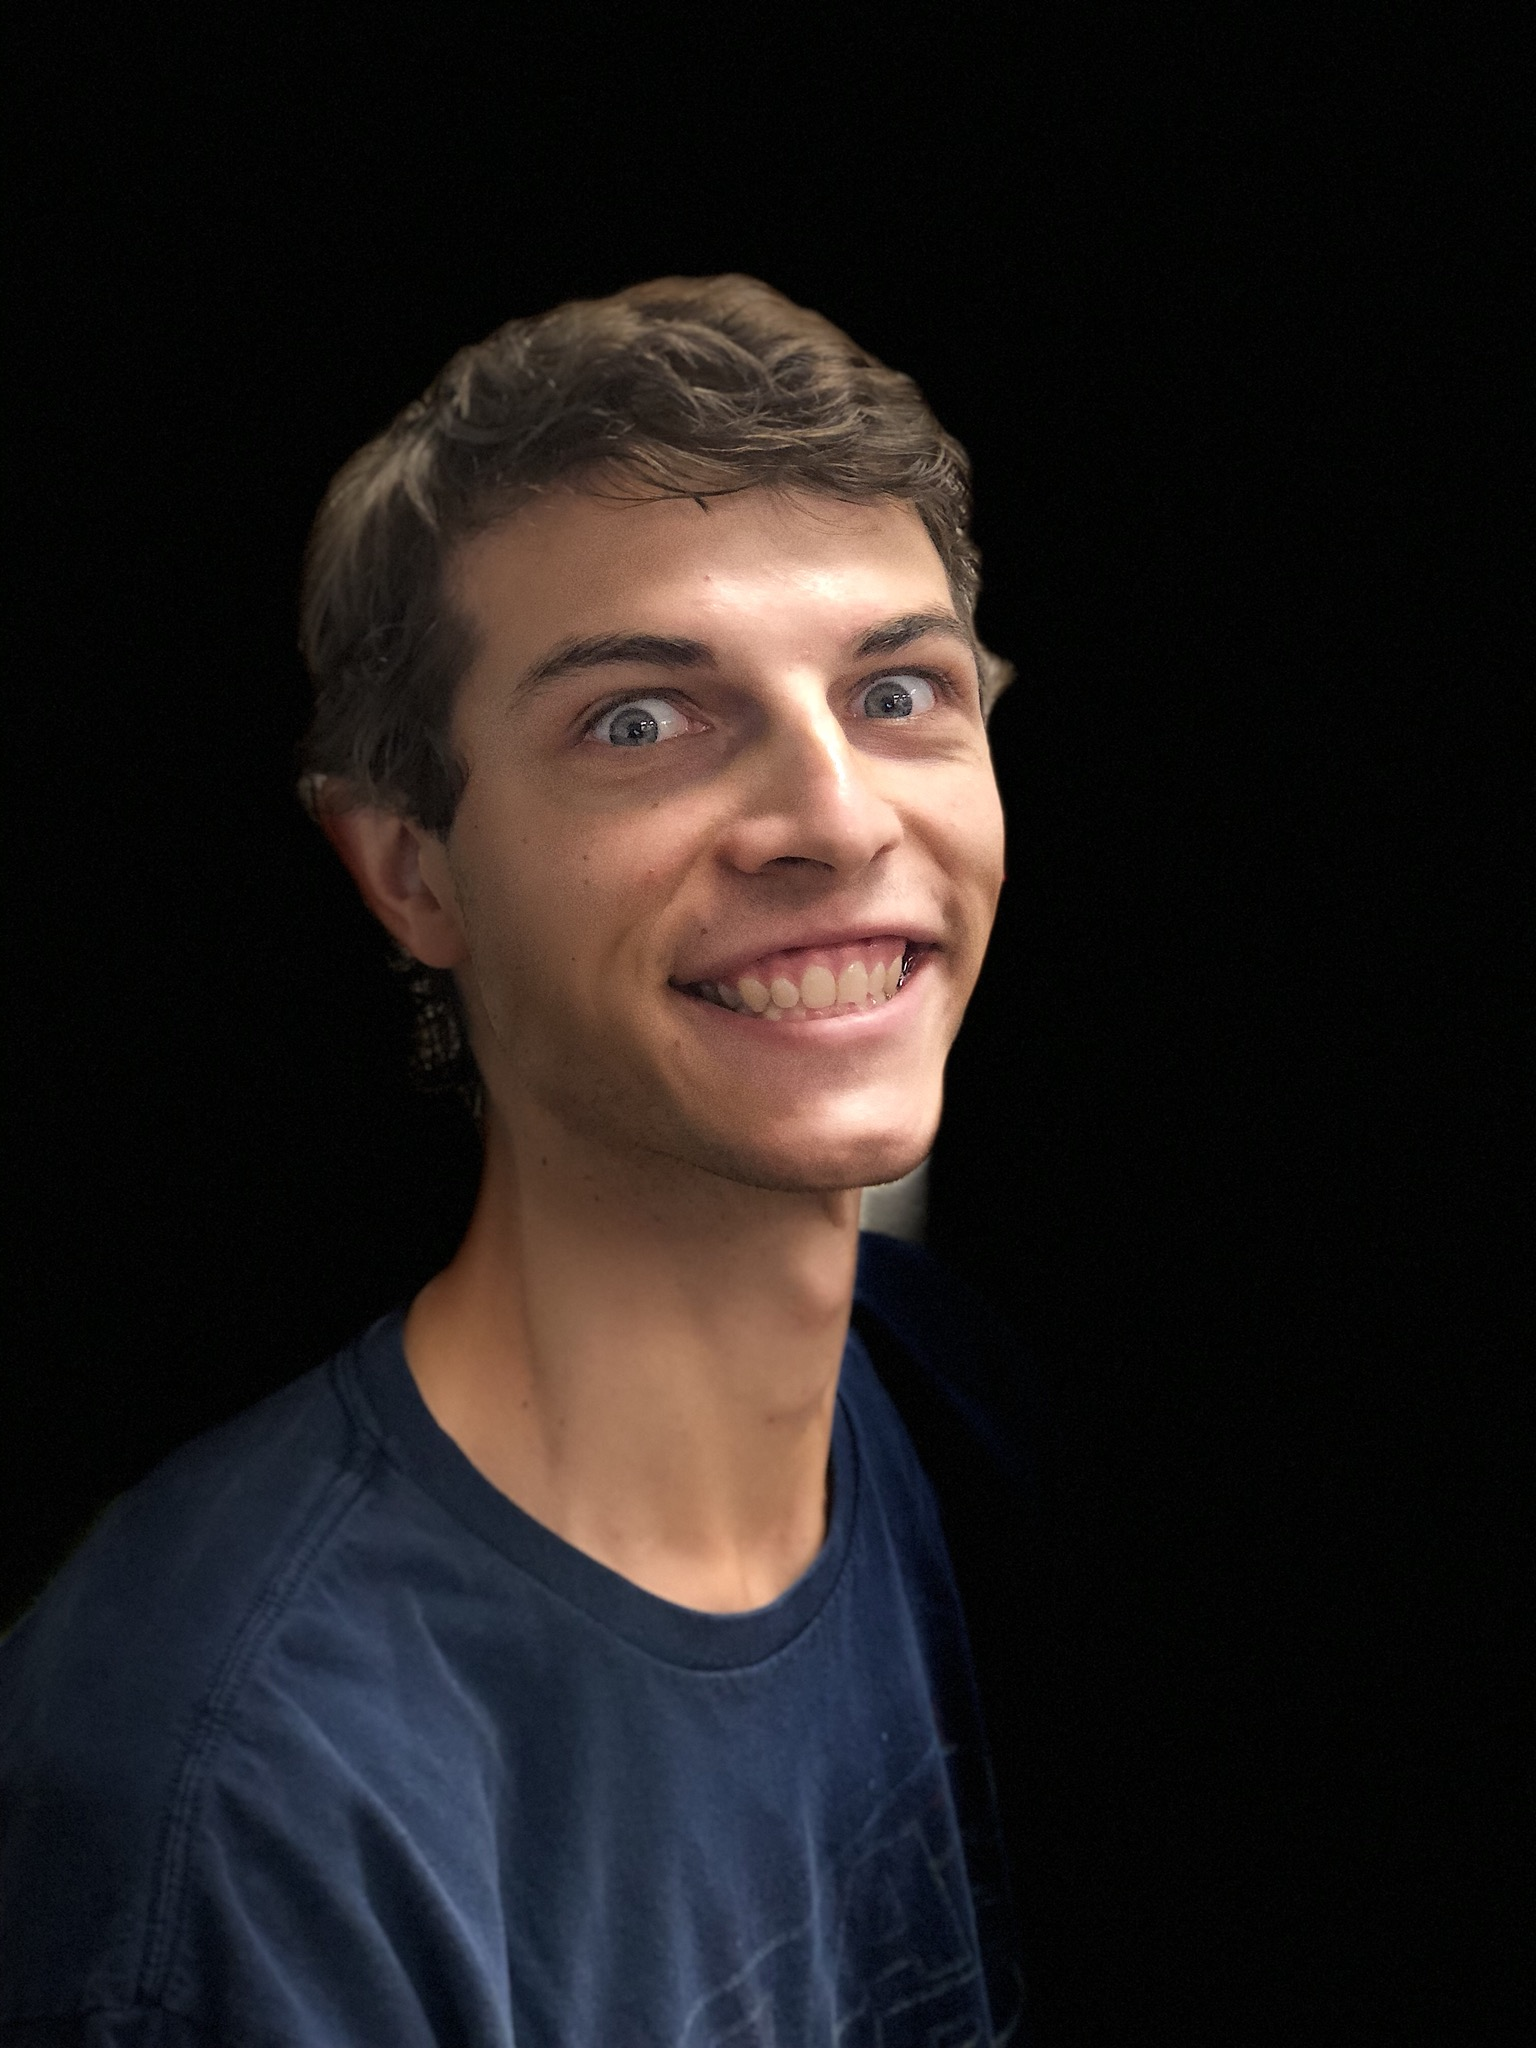 Picture of Ian using the new lighting effects that looks very bad.